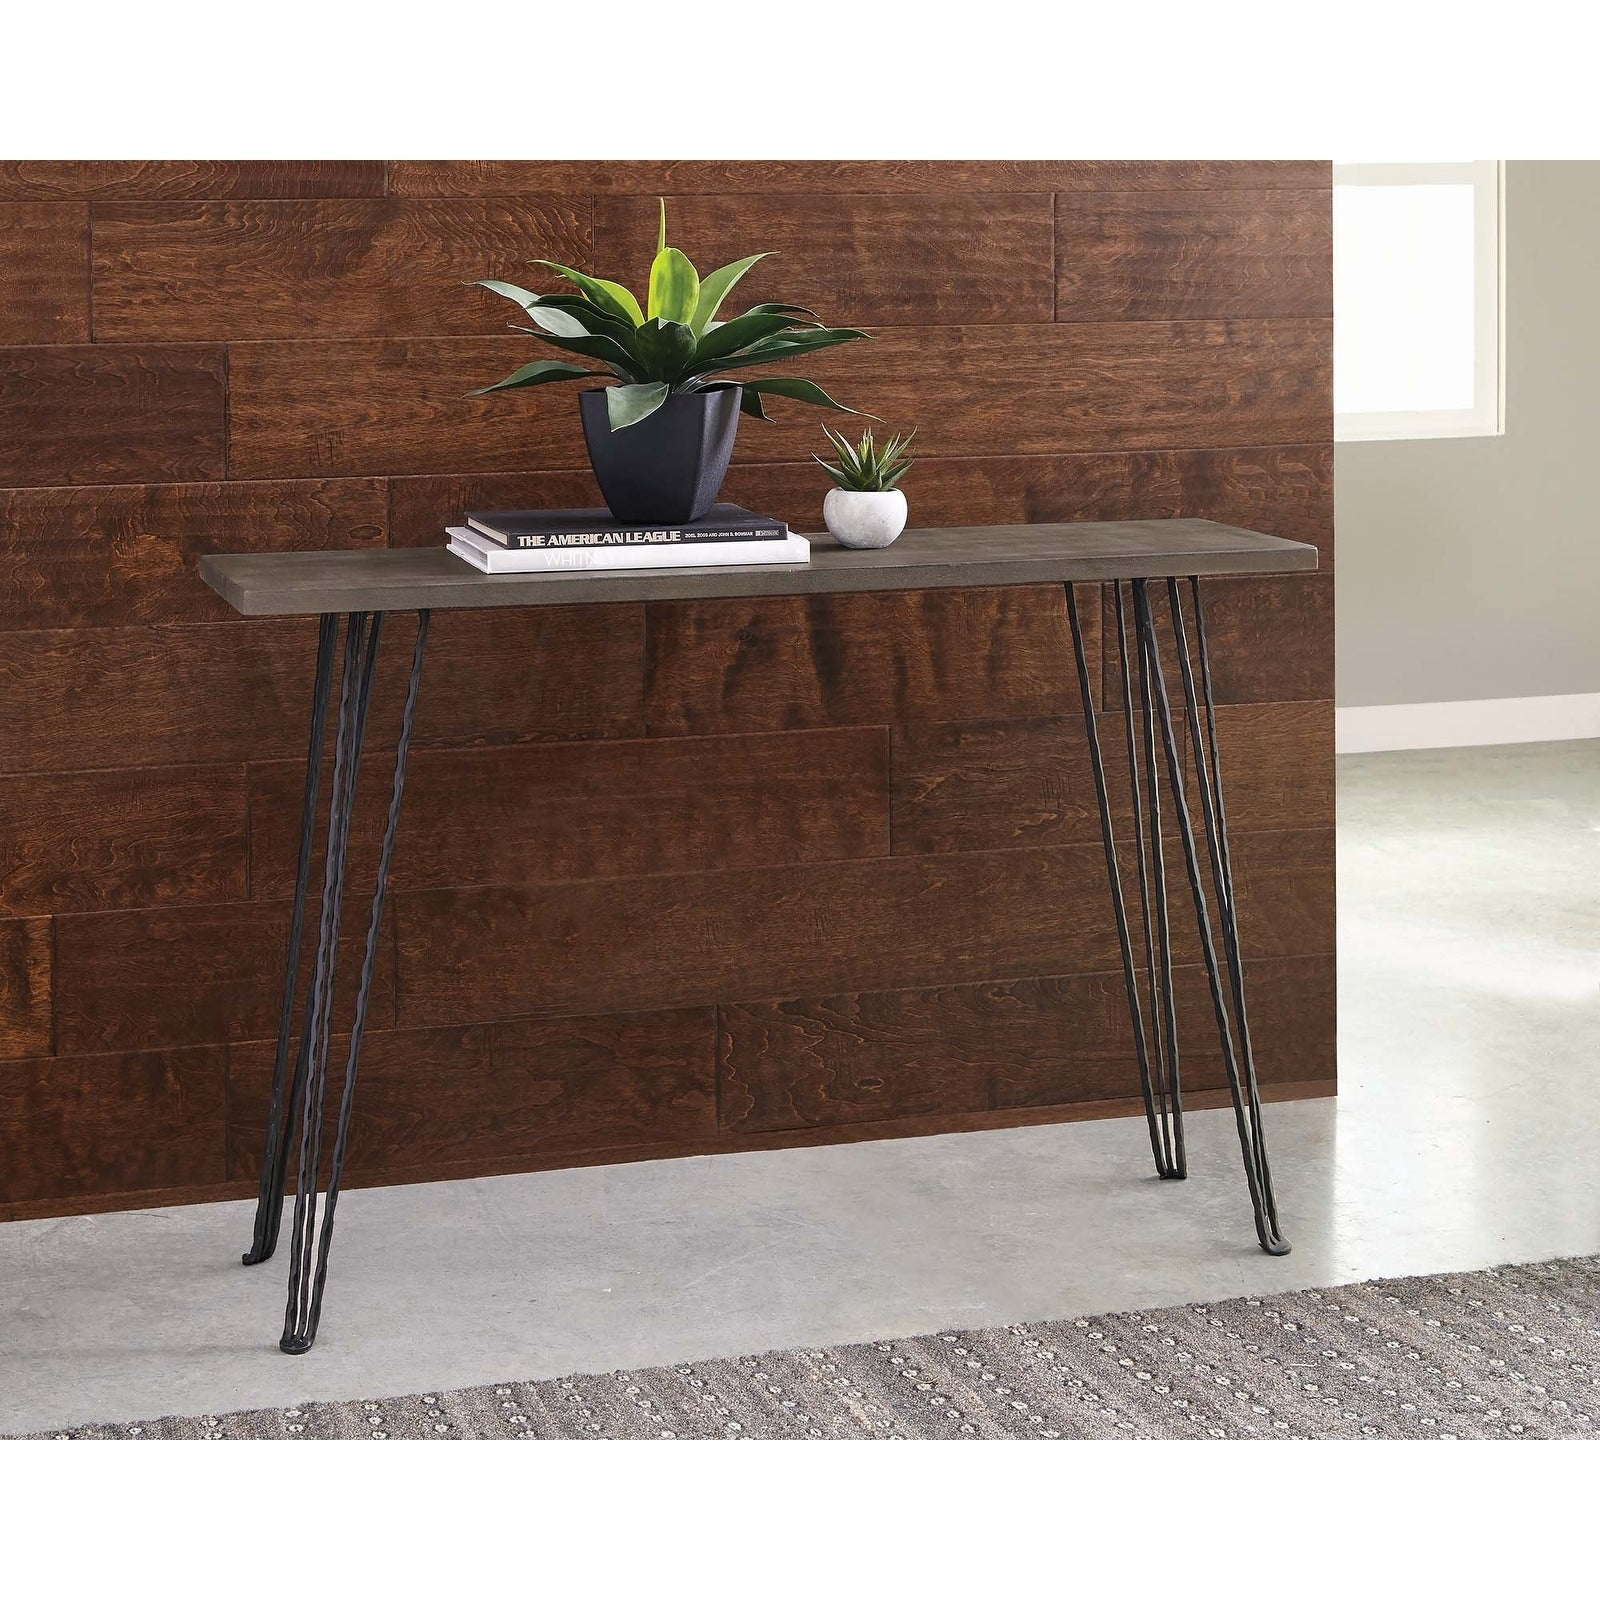 a43ff948b6de27 Shop Concrete and Black Rectangular Console Table - On Sale - Free Shipping  Today - Overstock - 25860033